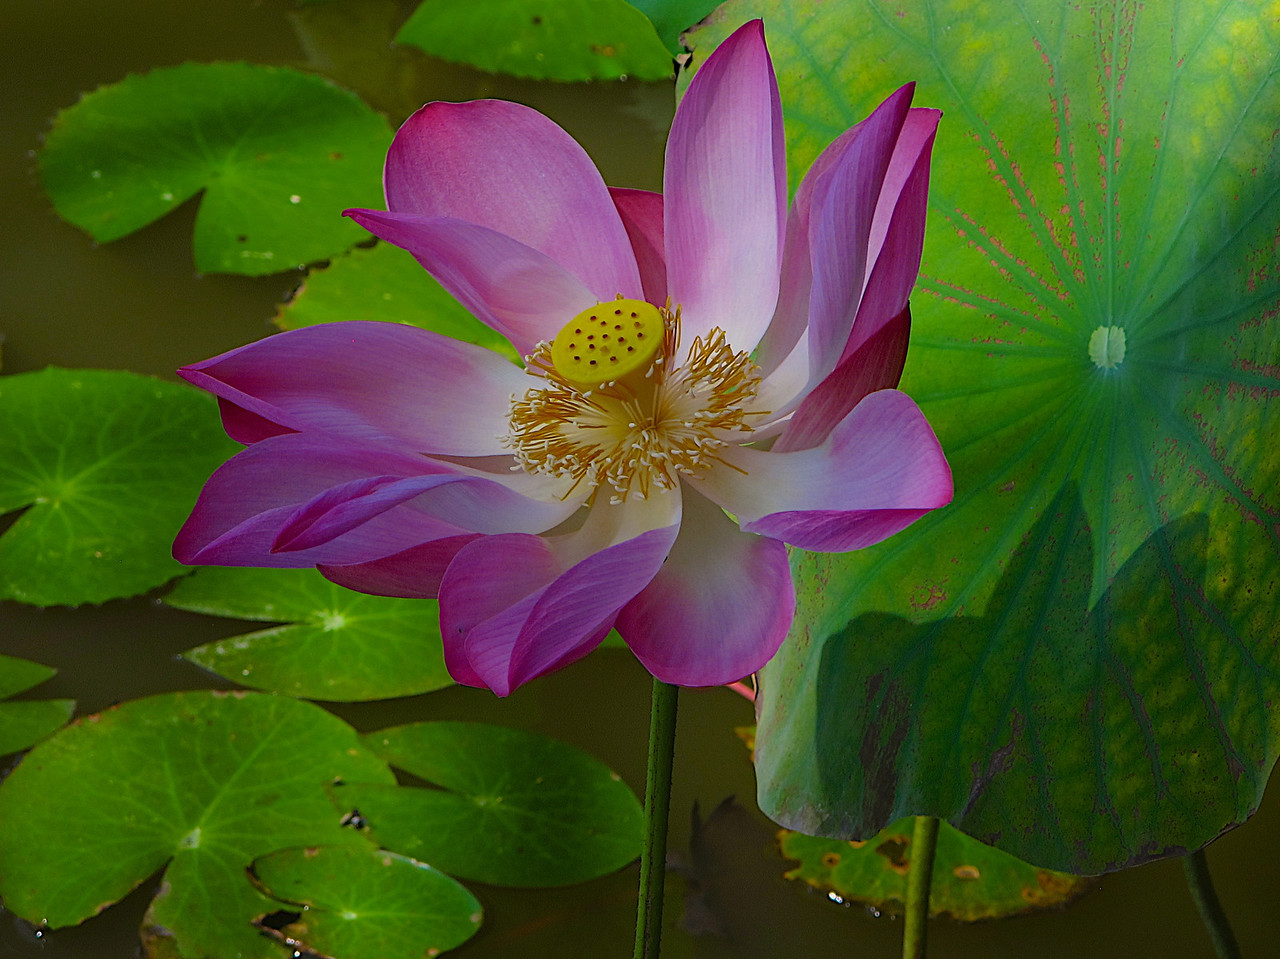 An individual lotus can live for over a thousand years and has the rare ability to revive into activity after stasis. In 1994, a seed from a sacred lotus, dated at roughly 1,300 years old was successfully germinated.